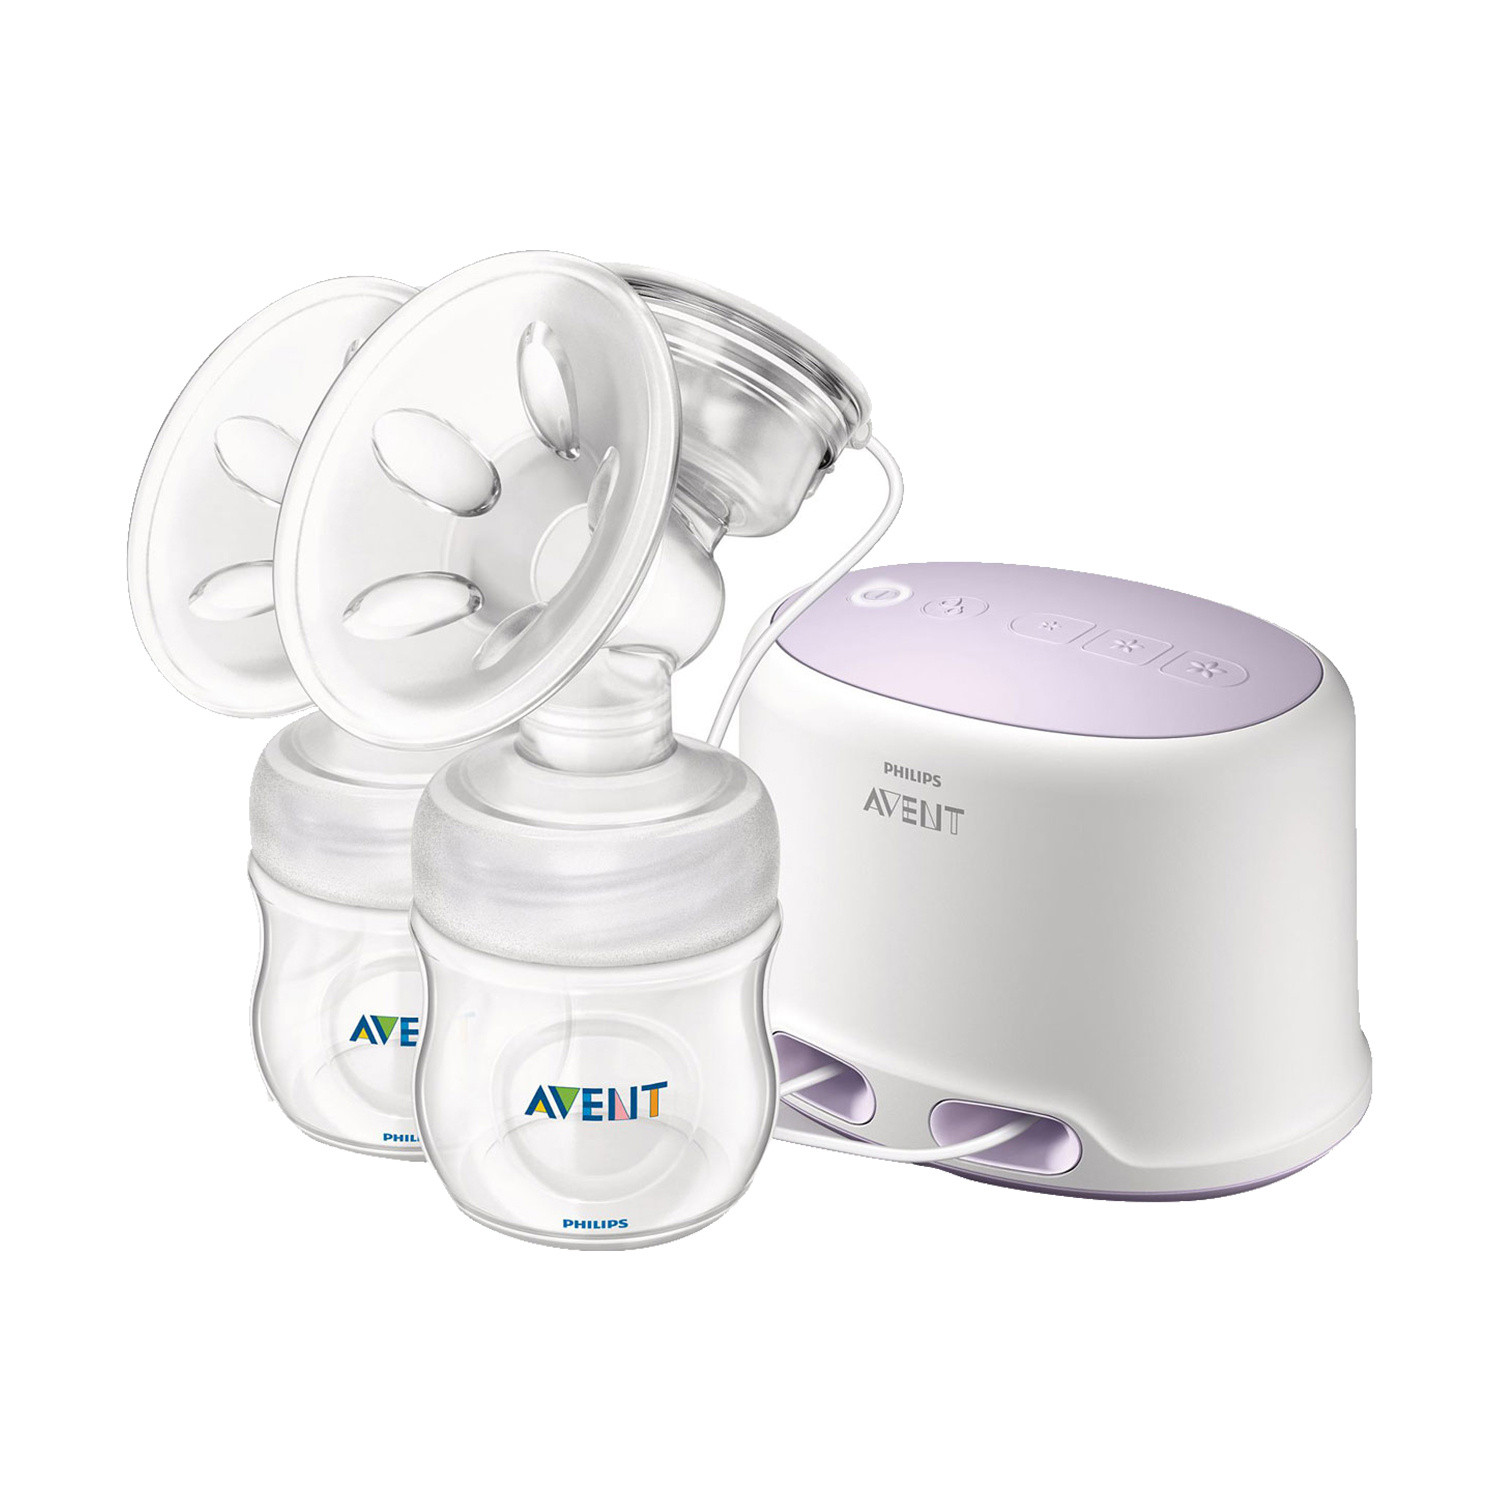 Philips Avent Double Electric Breast Pump Standard Stand